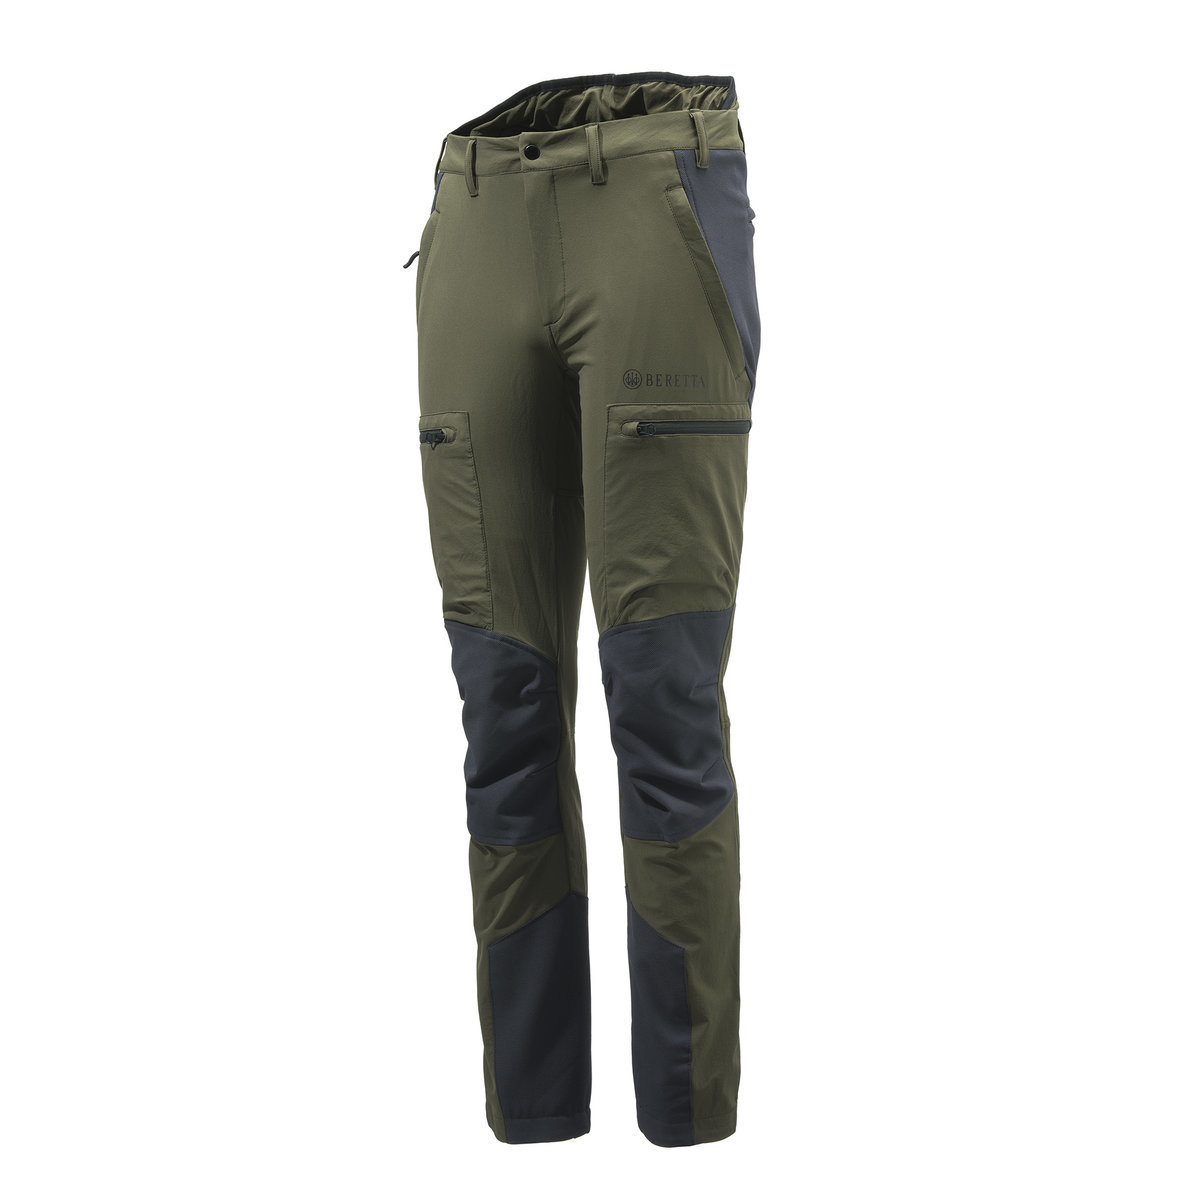 Beretta 4 Way Stretch Pants - Green